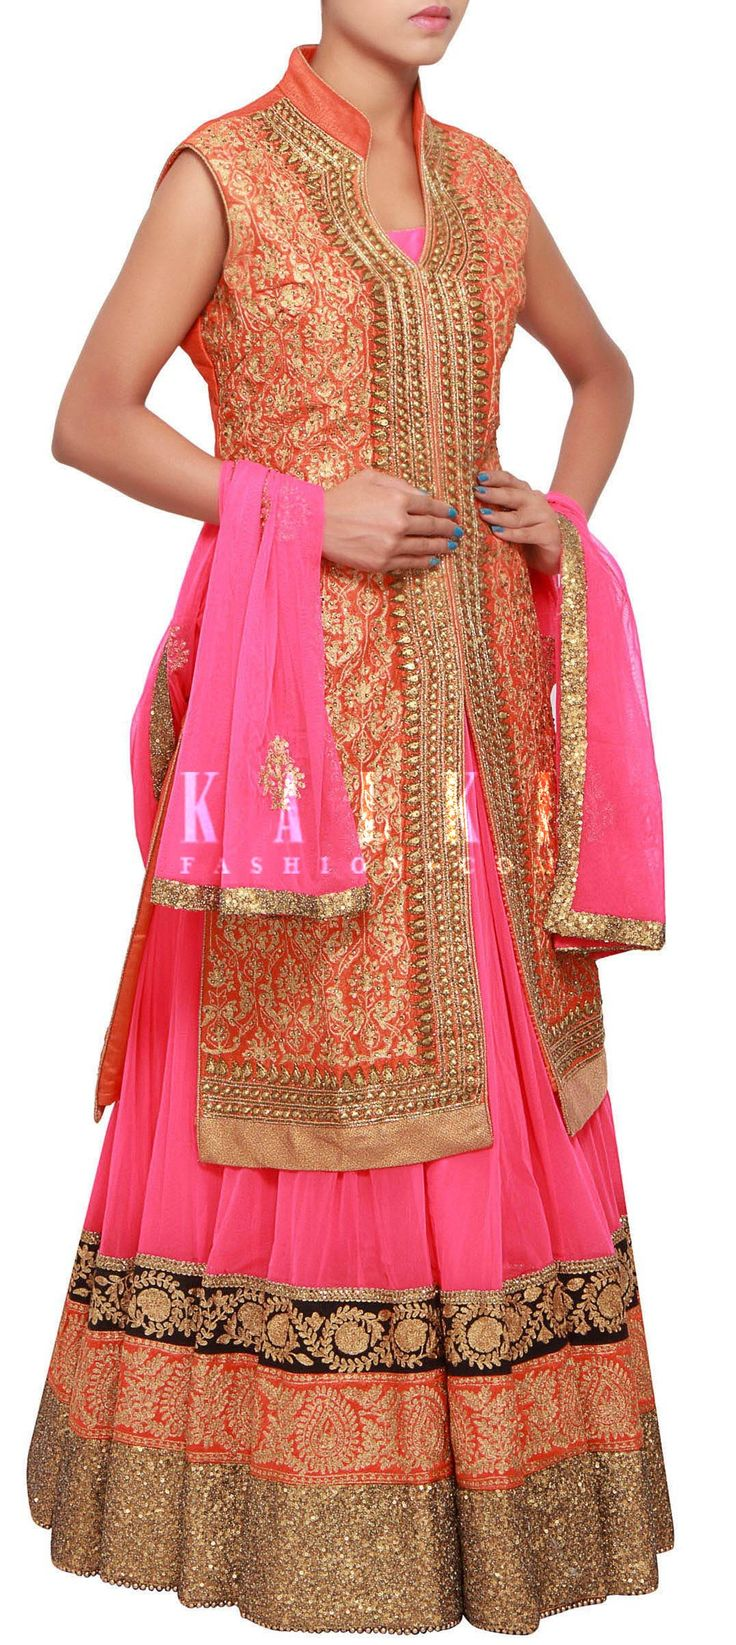 Buy Online from the link below. We ship worldwide (Free Shipping over US$100) http://www.kalkifashion.com/pink-anarkali-suit-matched-with-orange-jacket-embroidered-in-zari-and-sequence-embroidery-only-on-kalki.html